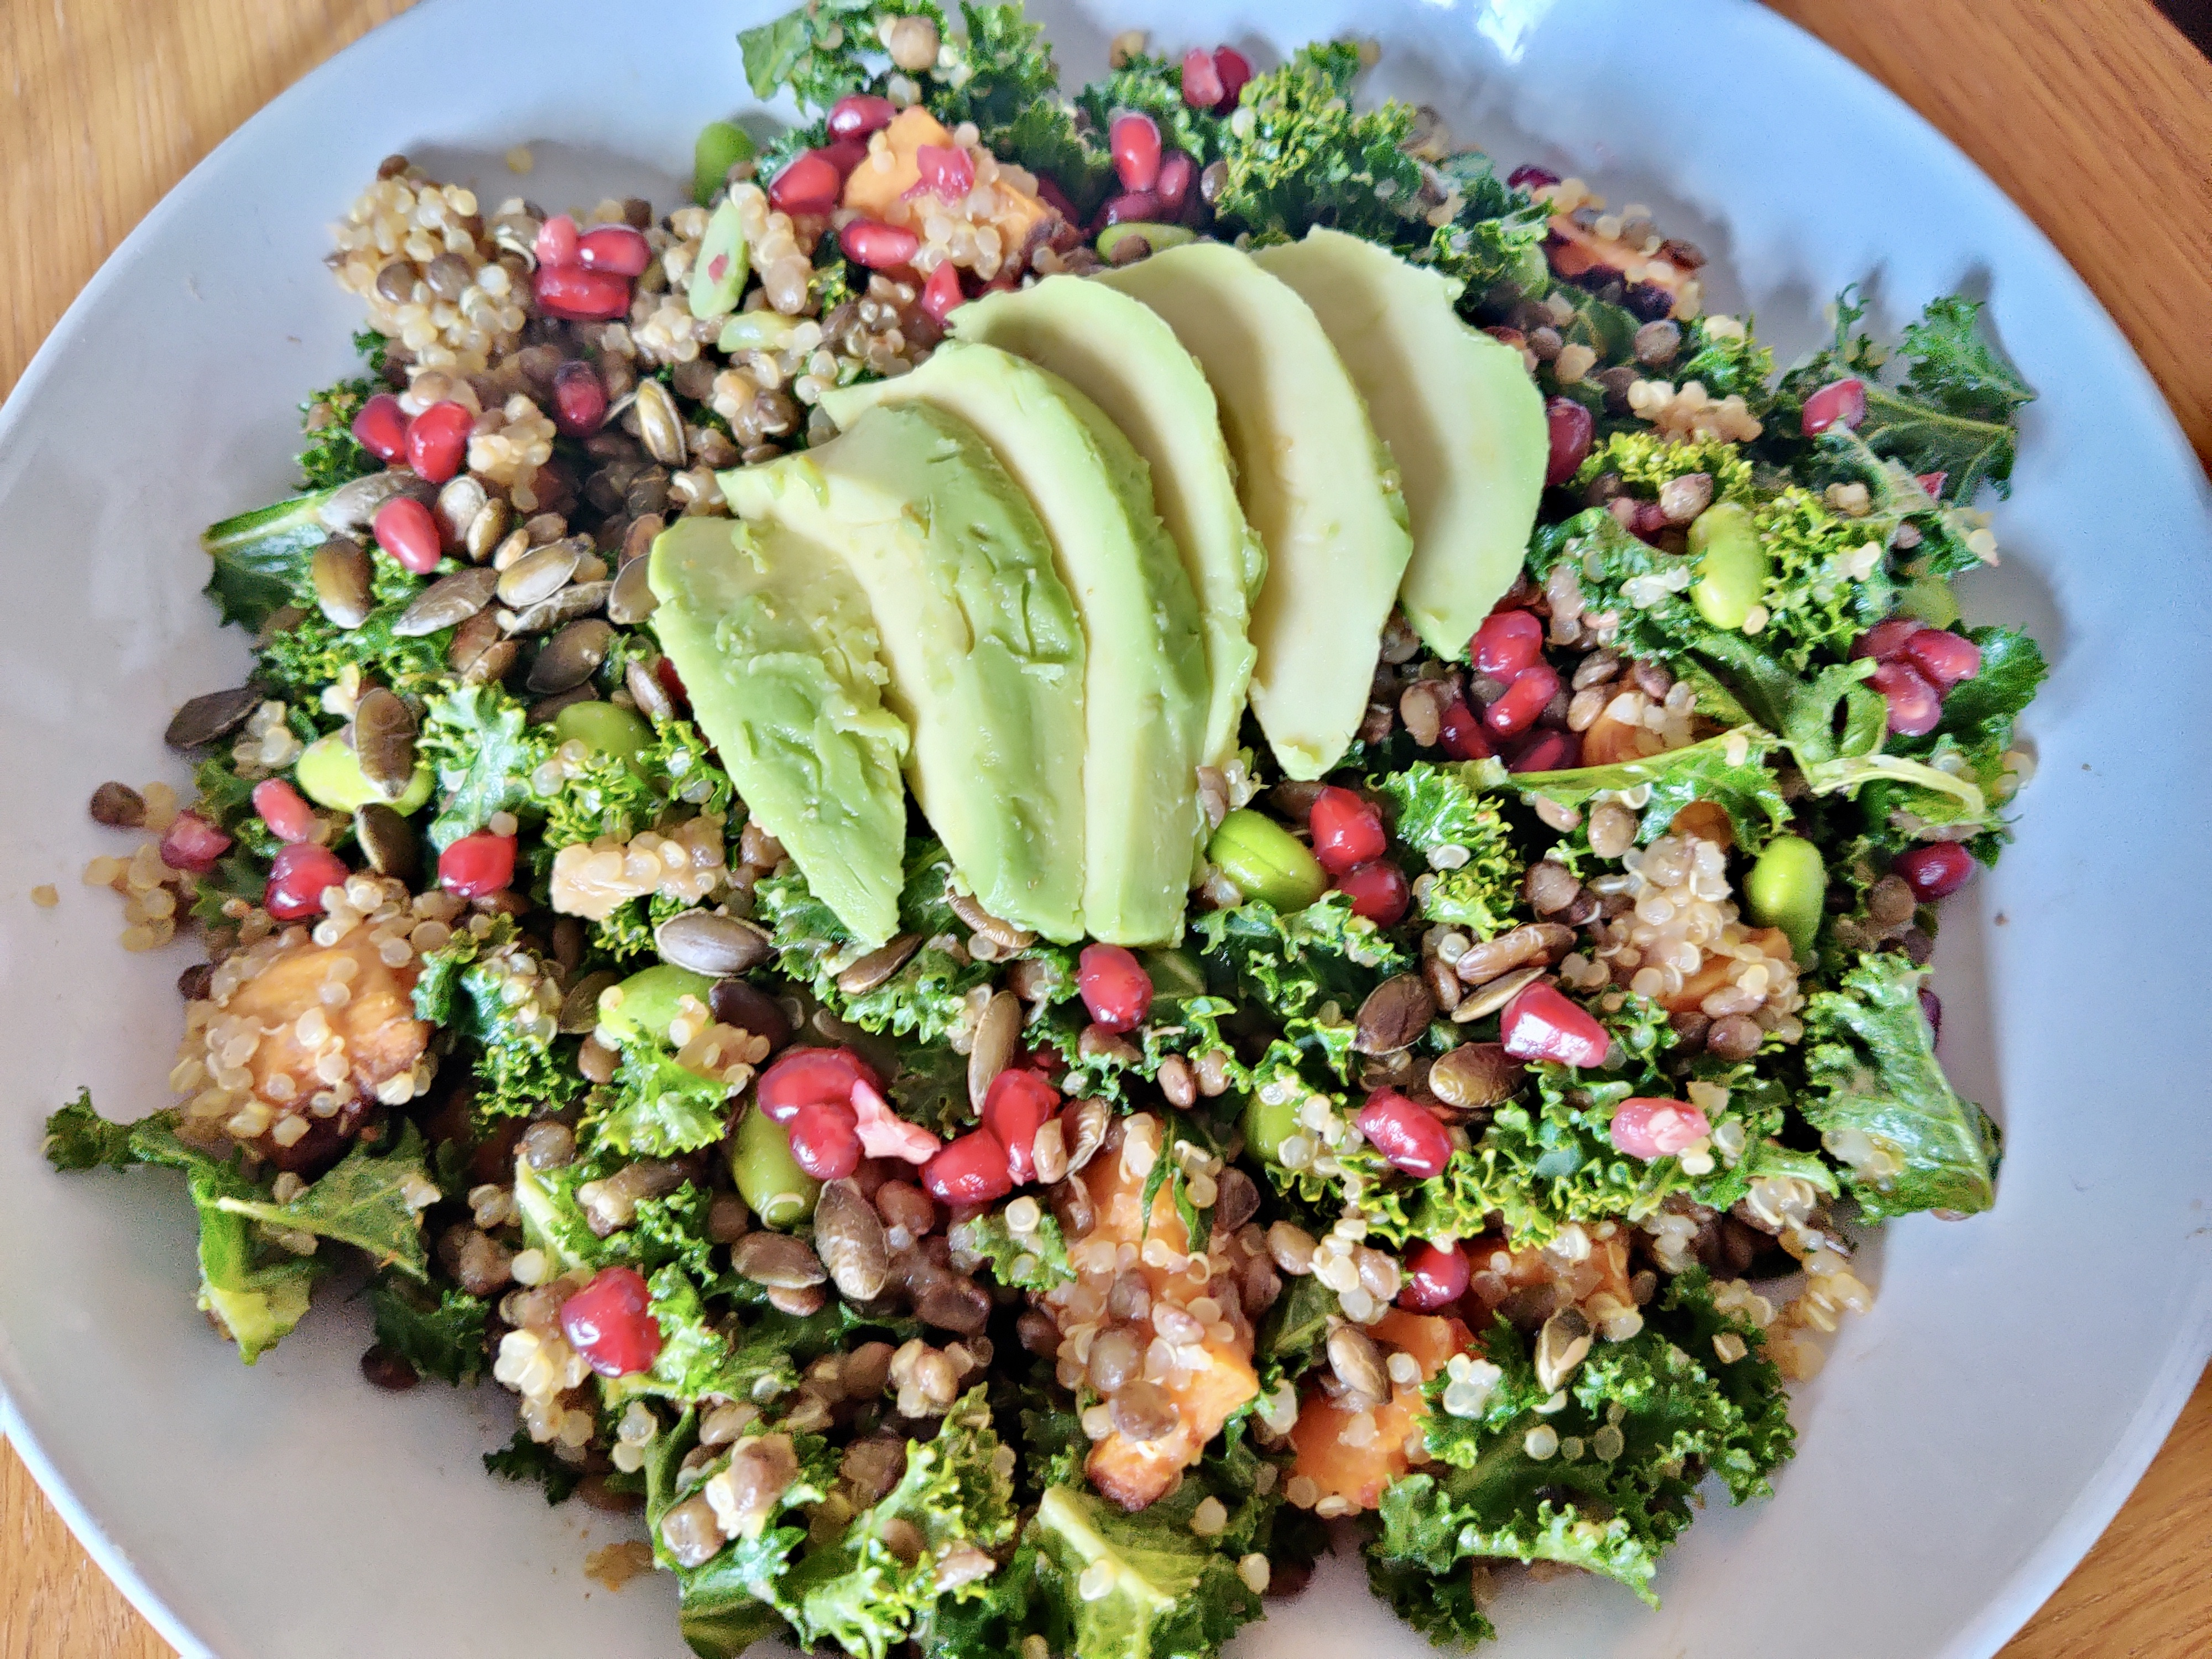 This hearty salad makes for a delicious healthy meal.